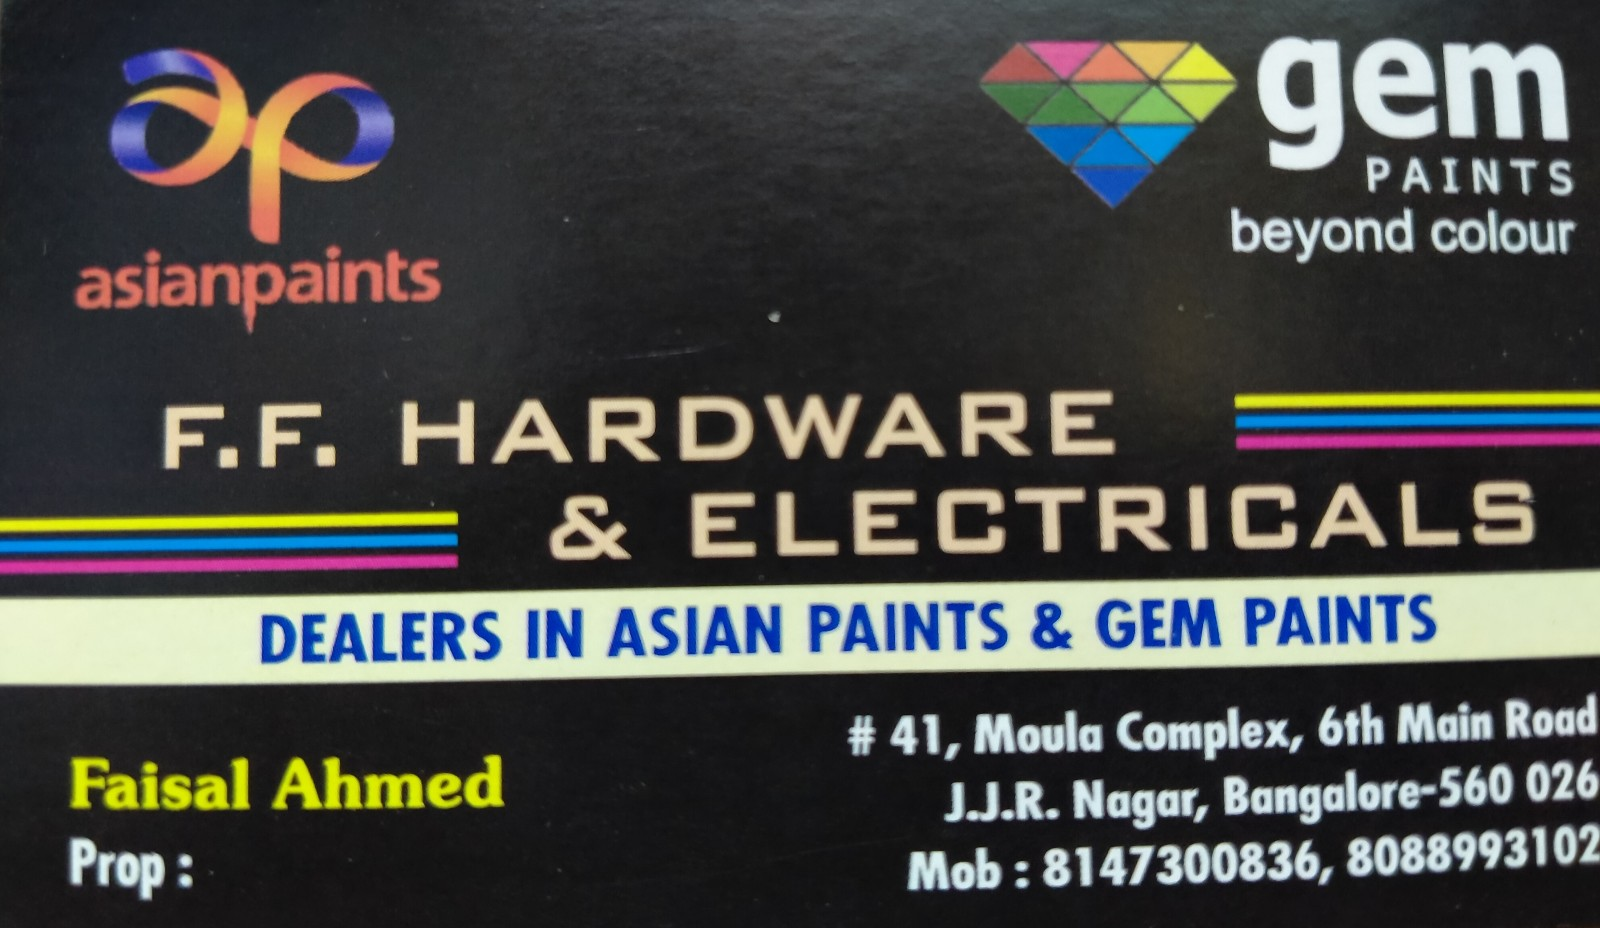 FF HARDWARE AND ELECTRICALS, BANGALORE, ALL ASIAN AND GEM PAINTS RANGE AVAILABLE